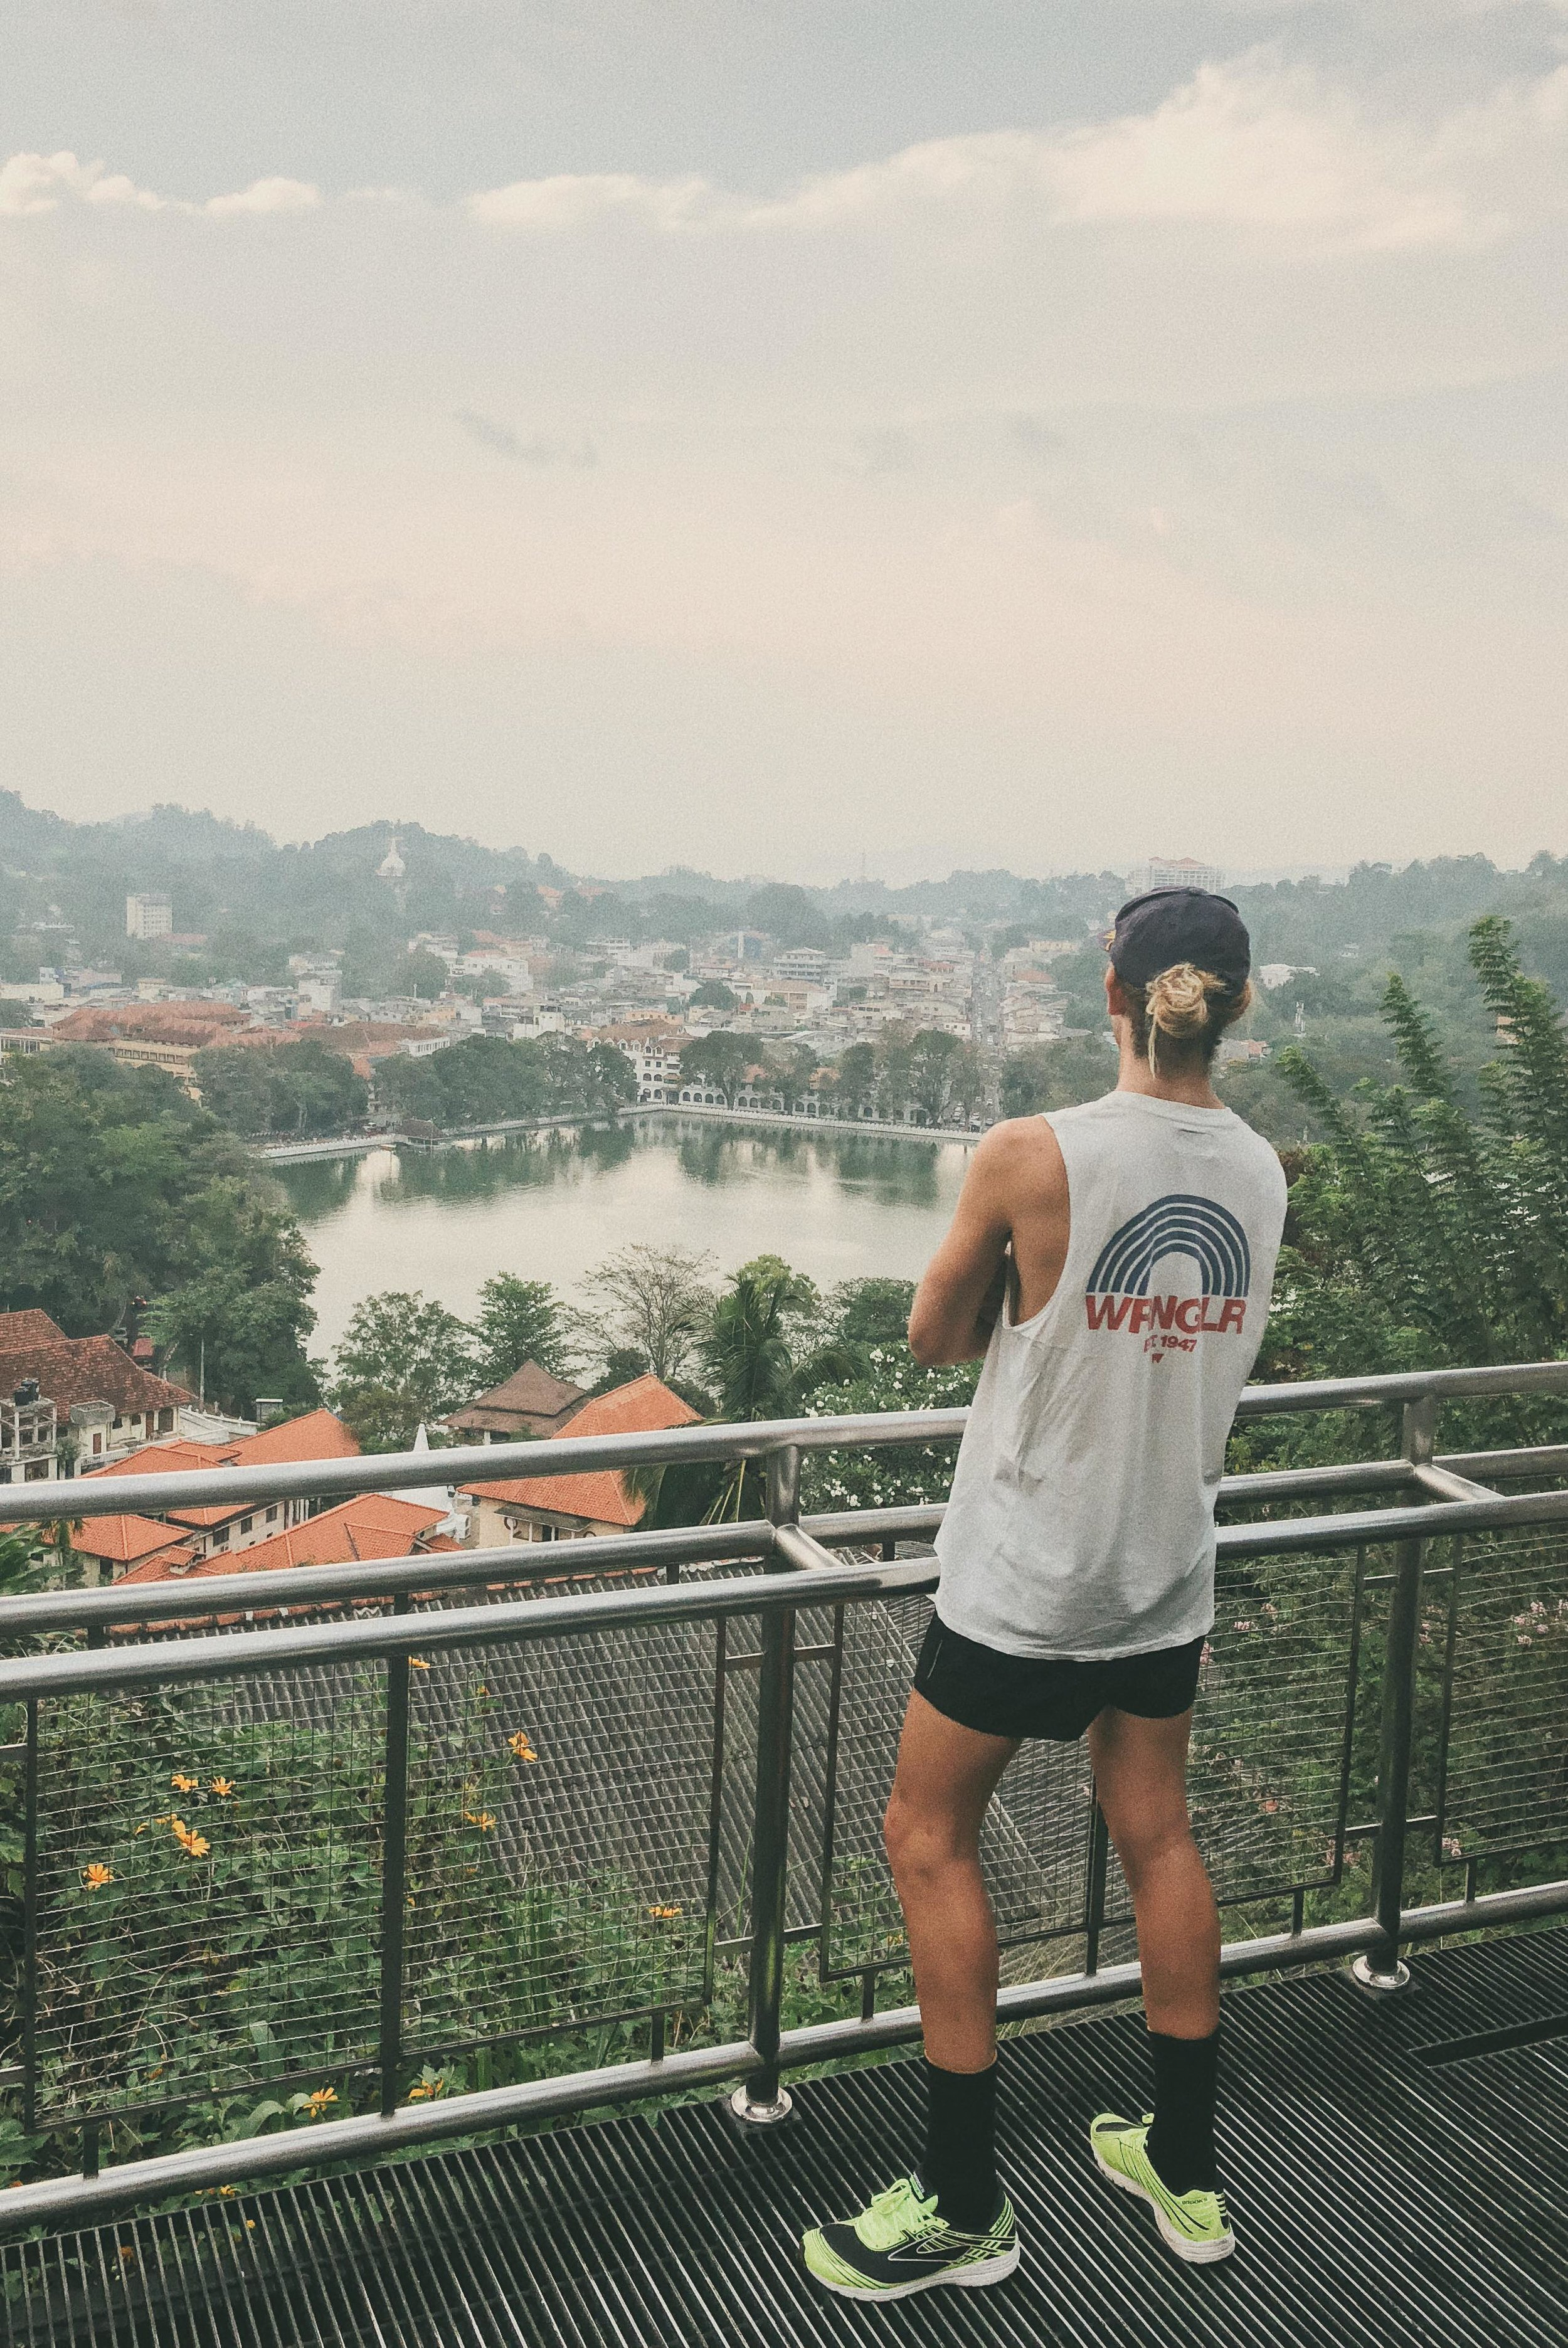 Made a point of running past the view point on top of town in Kandy.